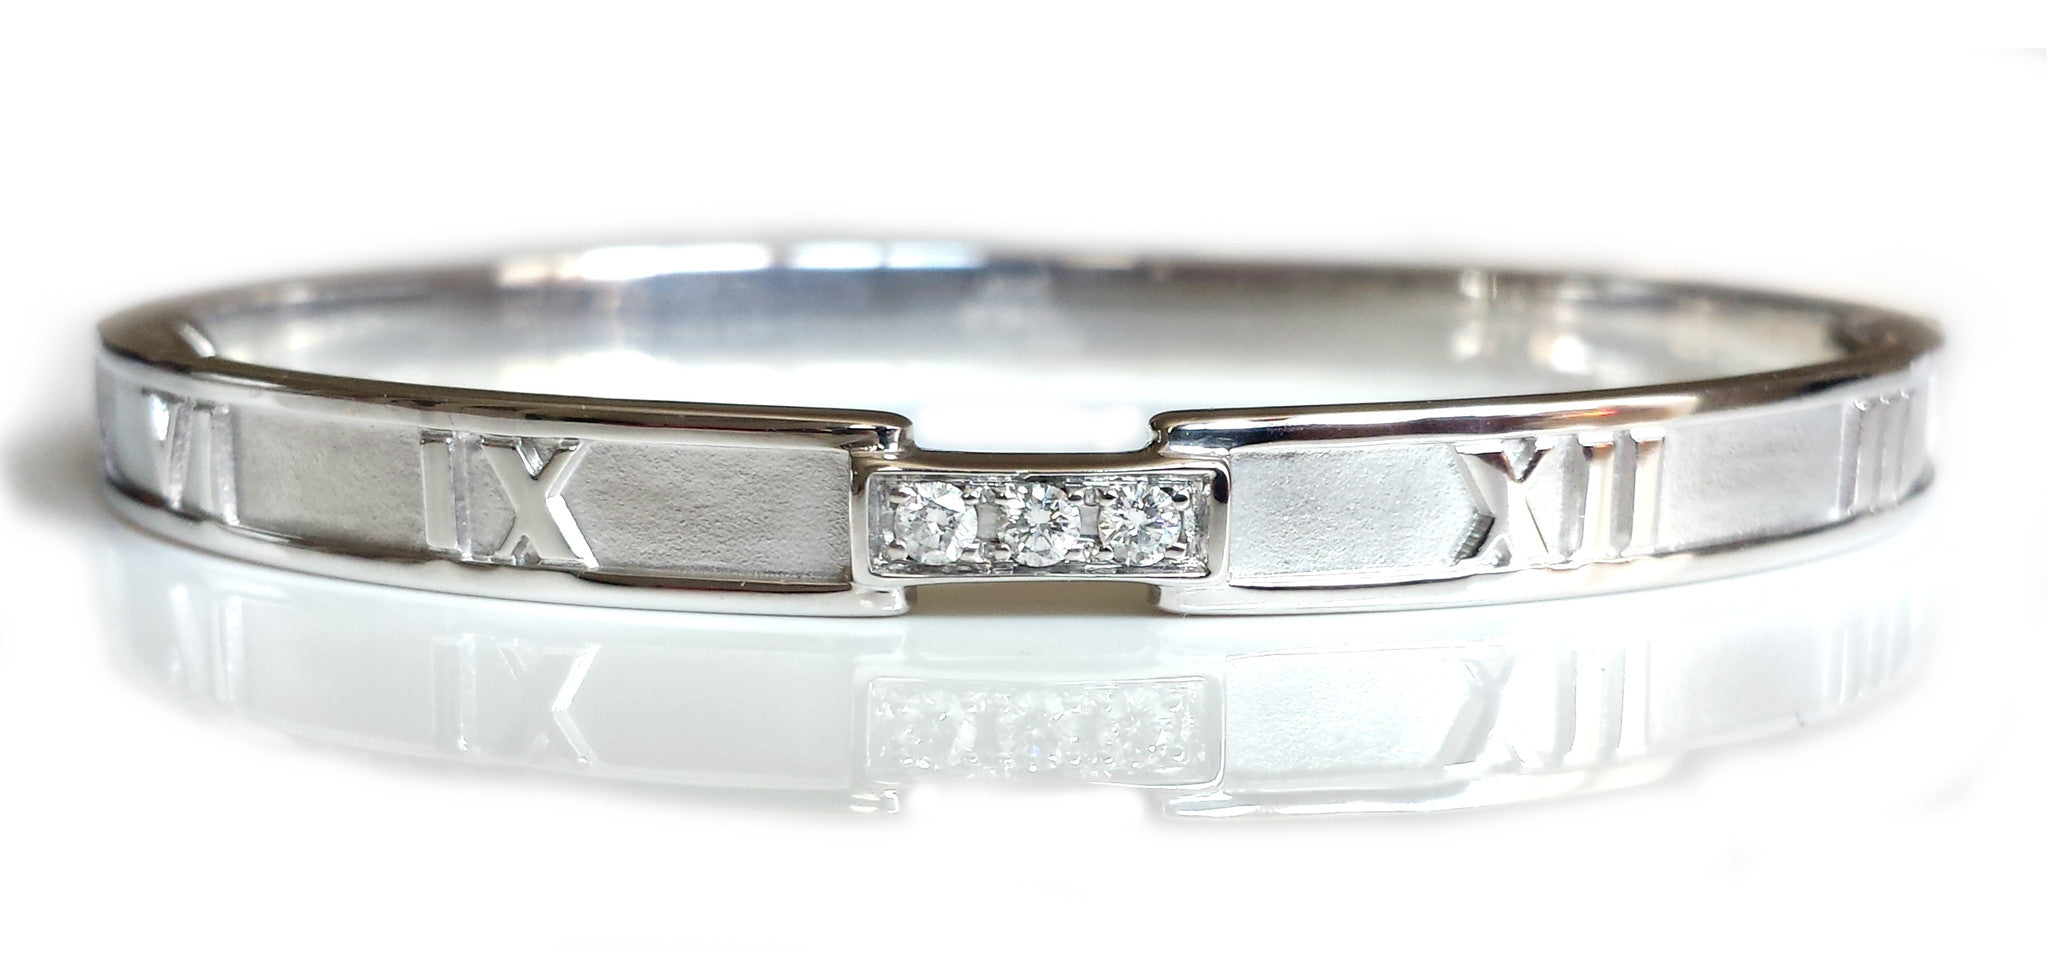 Tiffany & Co. Atlas Bangle in White Gold with Diamonds – Medium